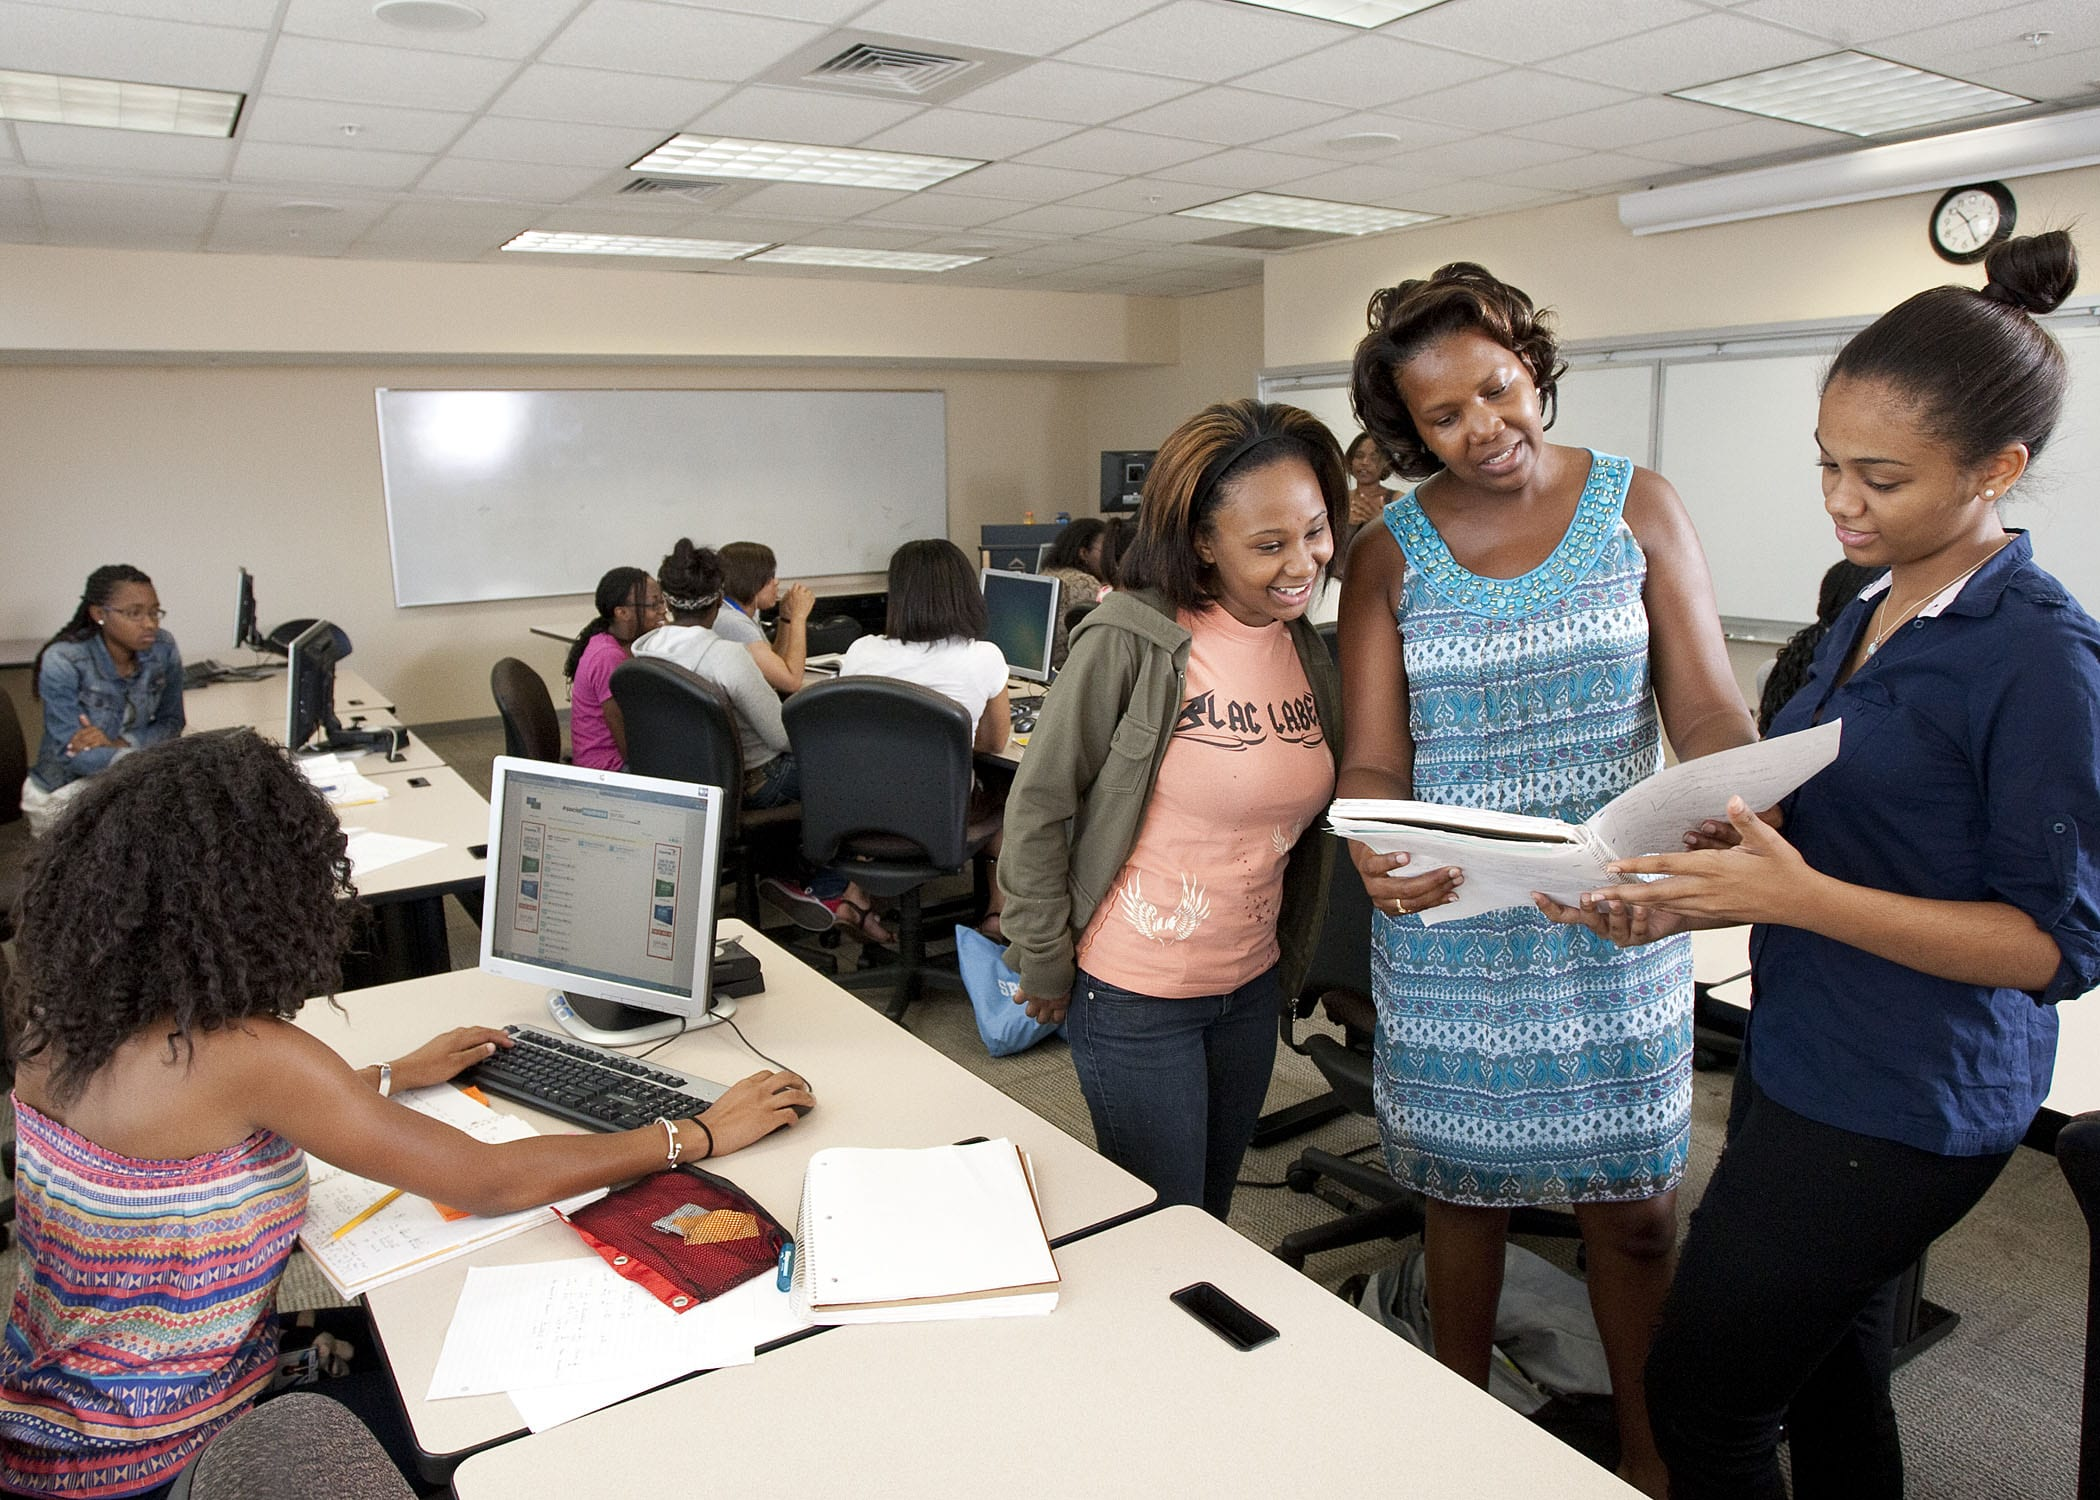 Image of a professor and several students working together in classroom near computers